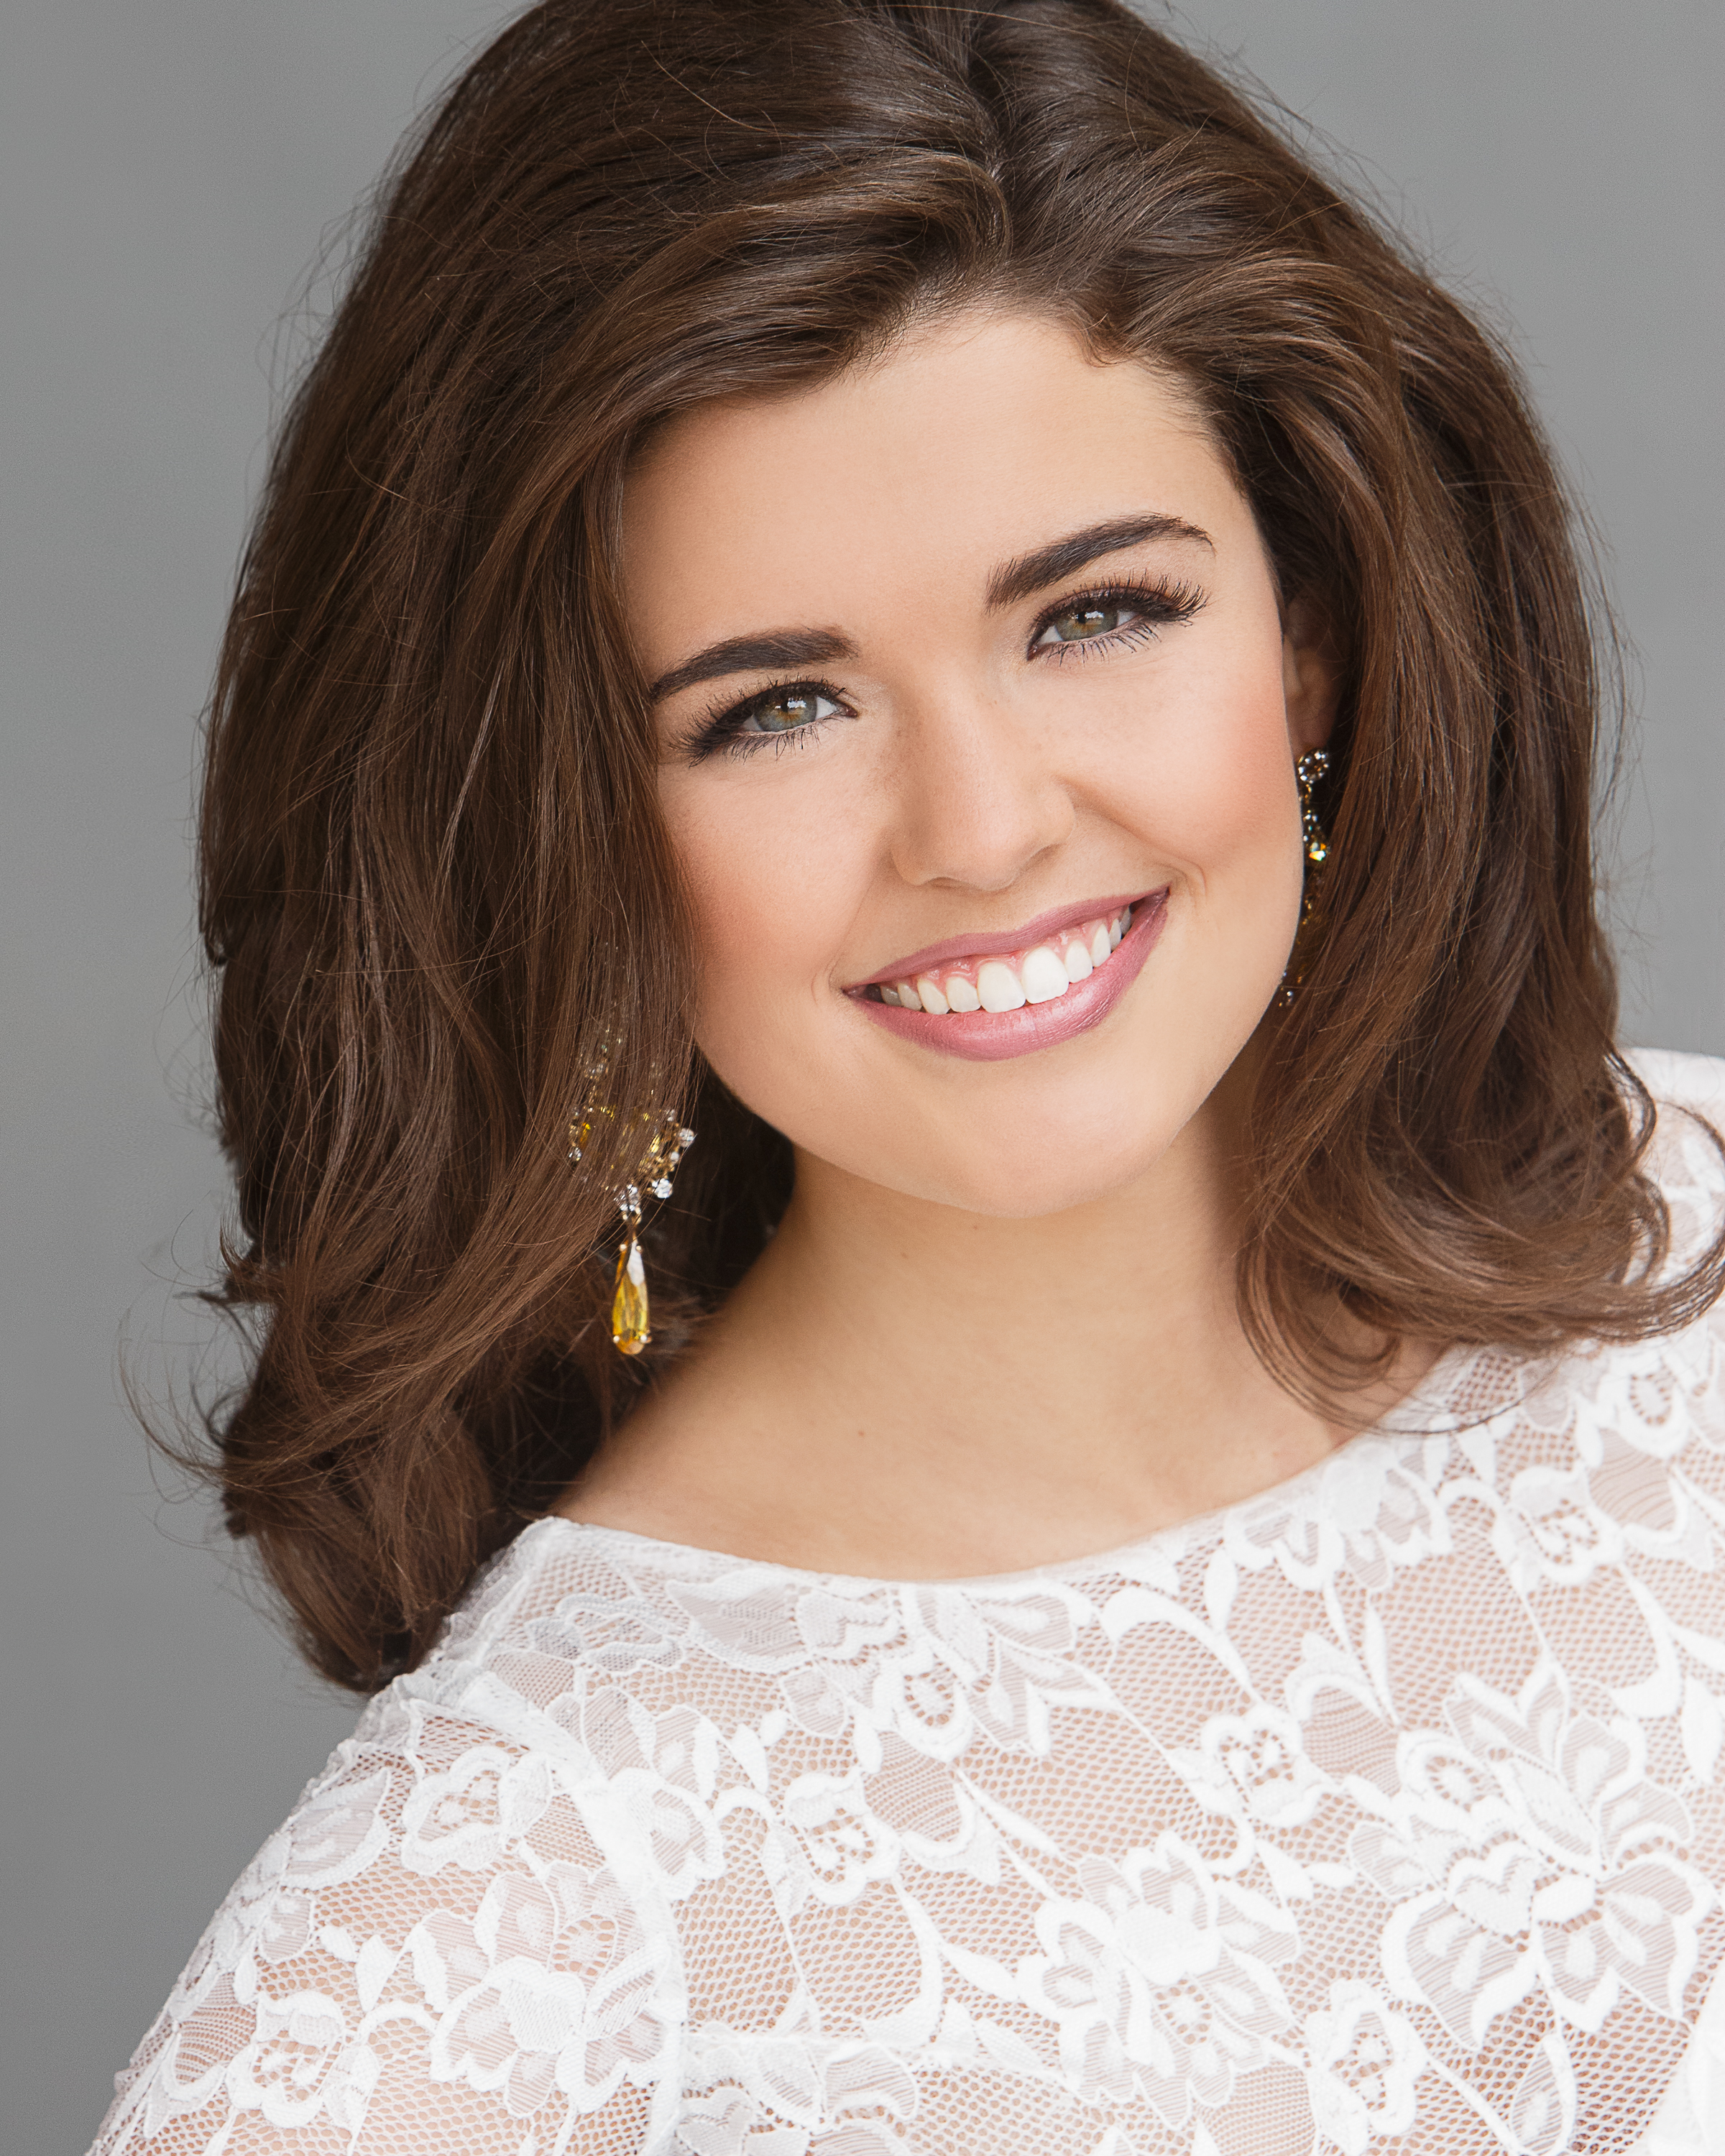 Miss Michigan 2017 - Katie Katie